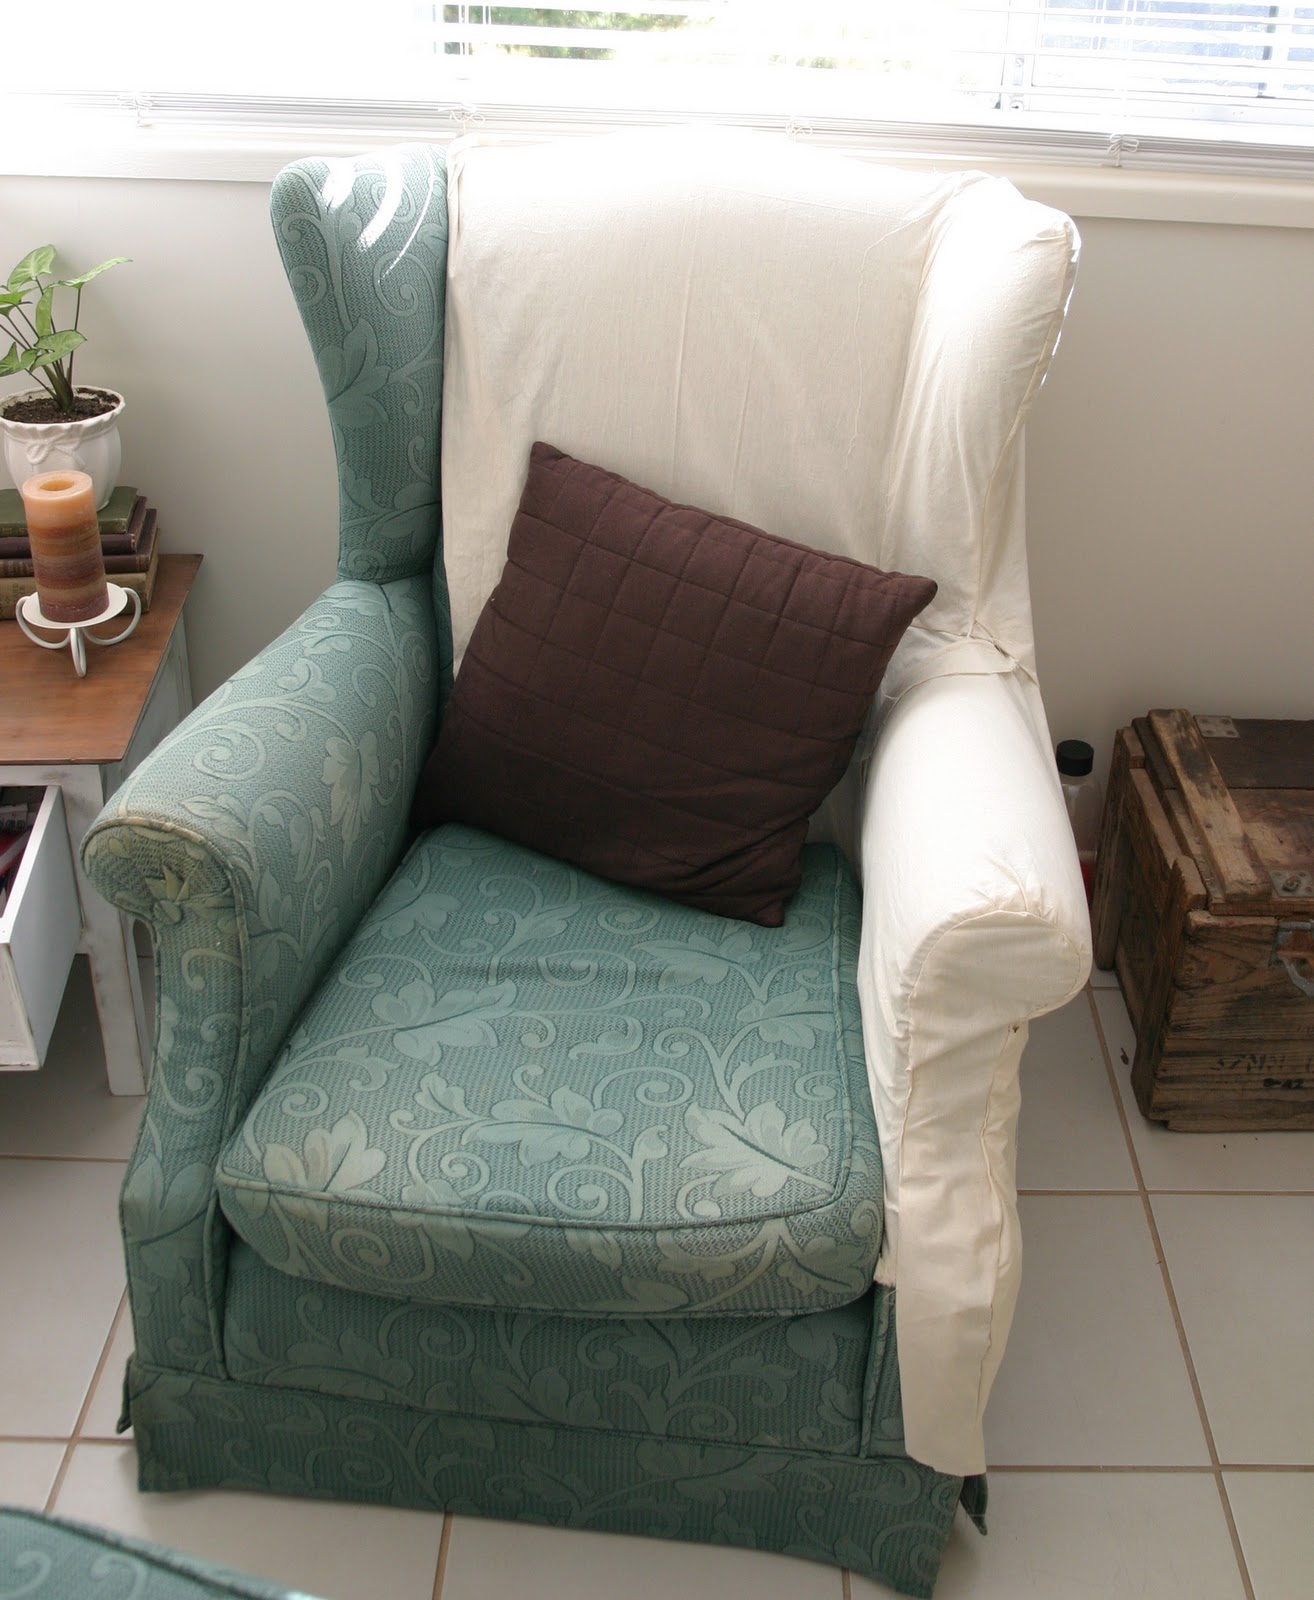 The Whimsical Wife: Wingback Chair Slipcovers... At long last!